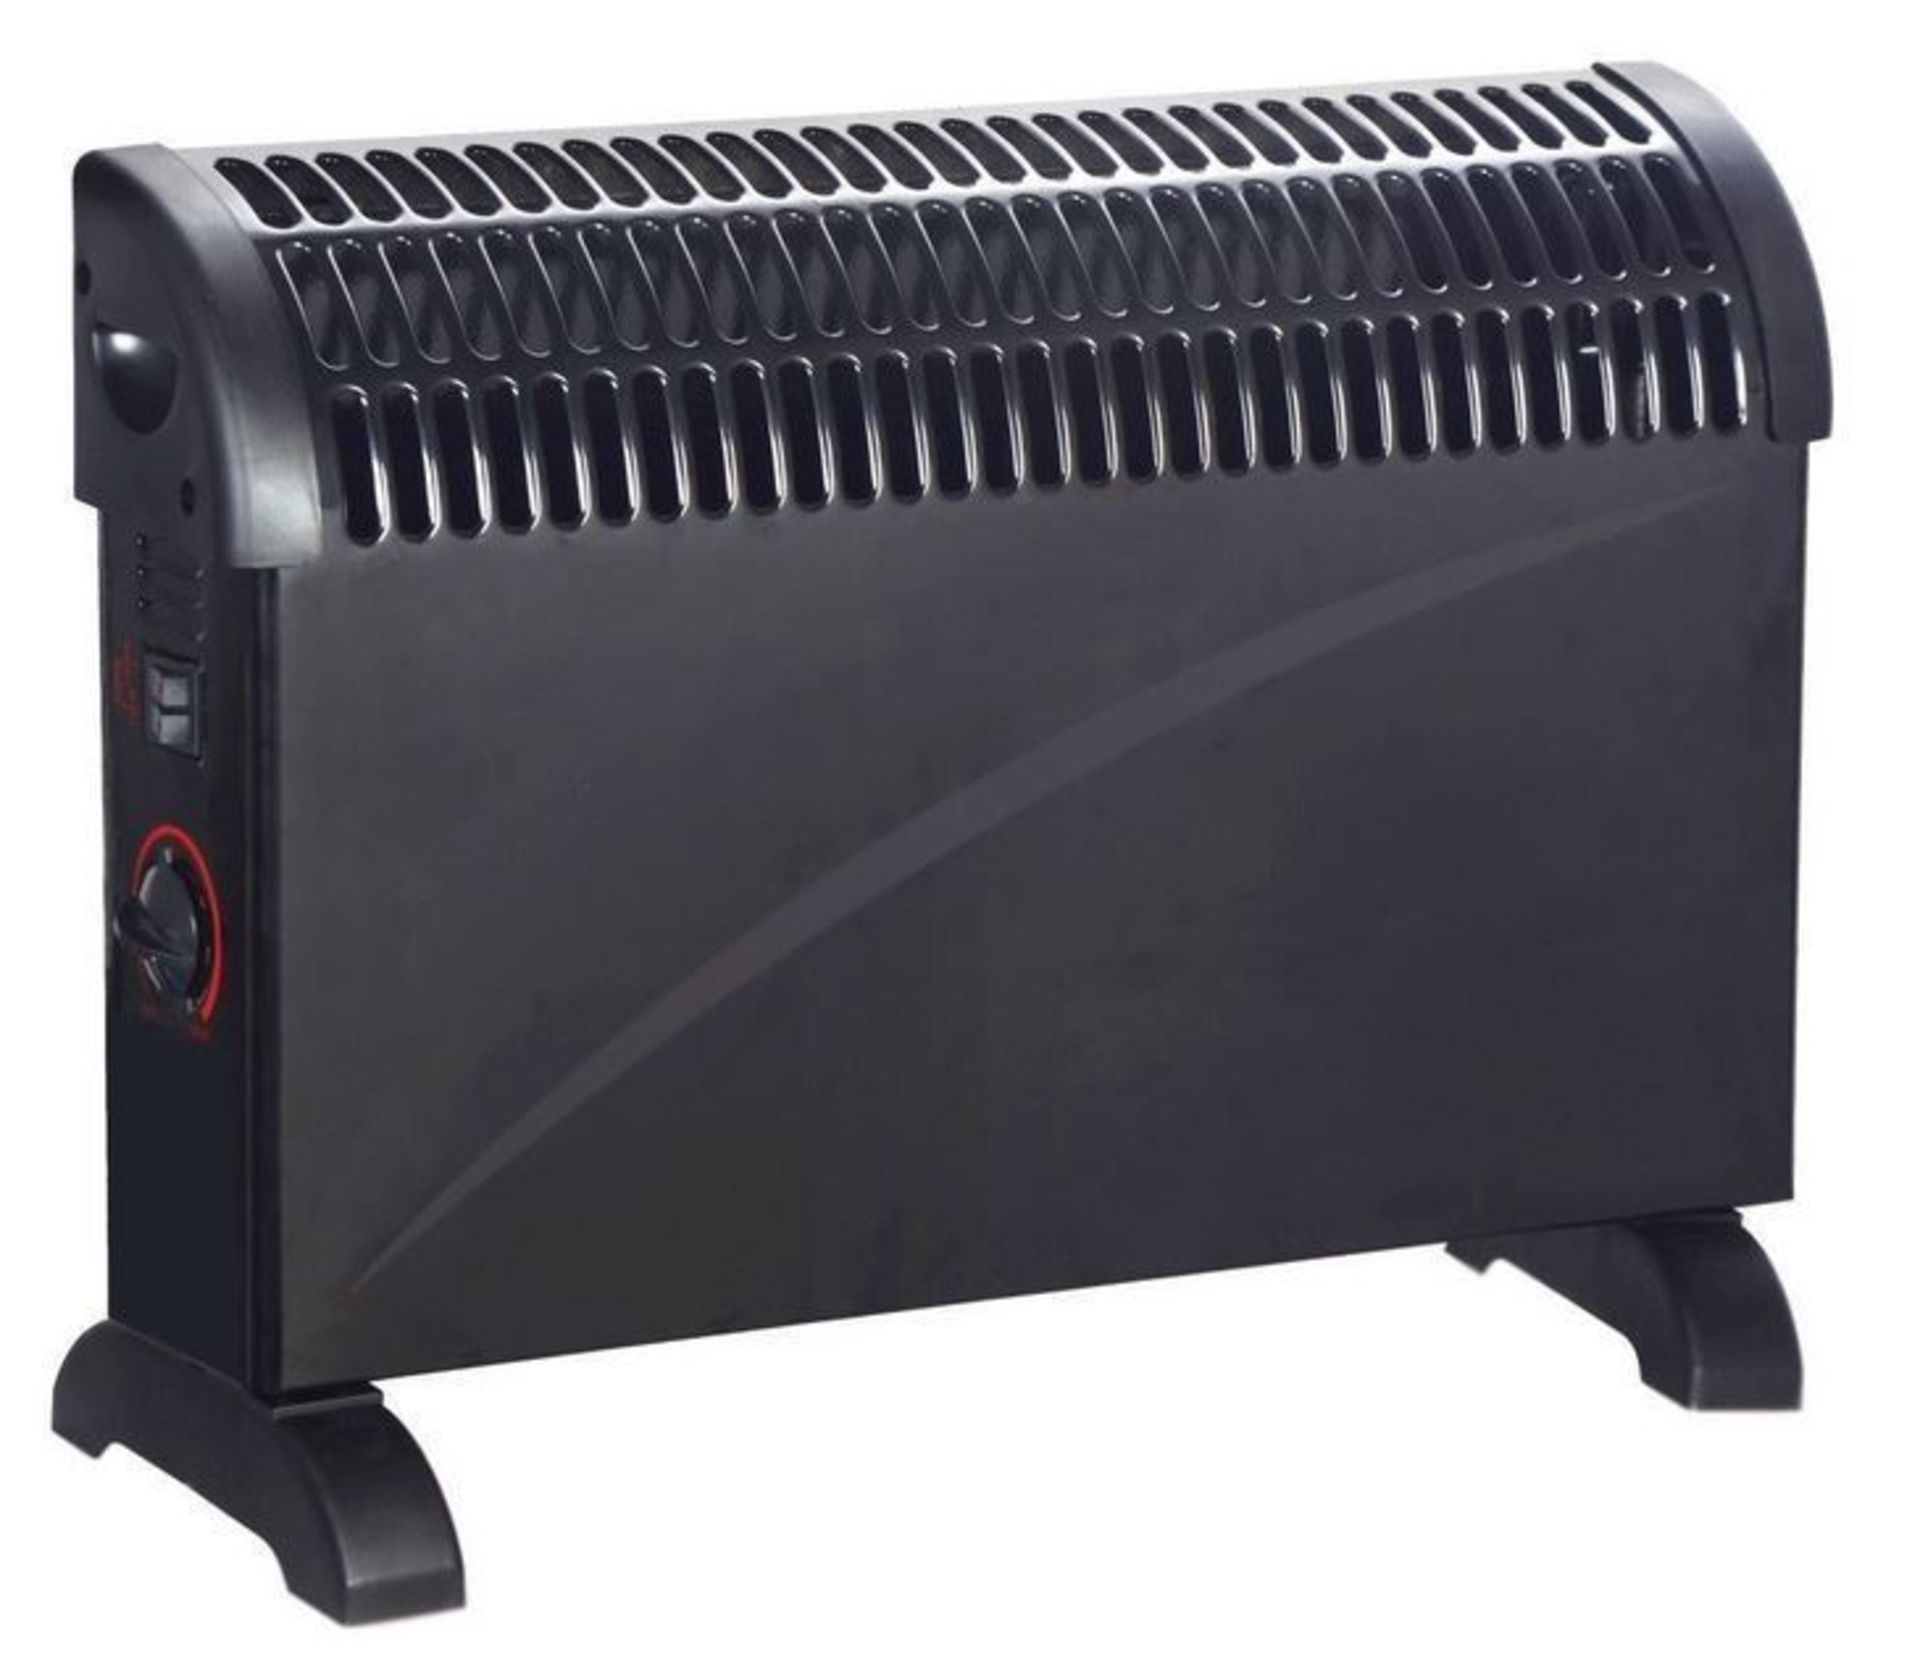 Lot 50096 - V Brand New Powatron 750/1250/2000w Convector Heater-3 Heat Settings-Adjustable Thermostat-